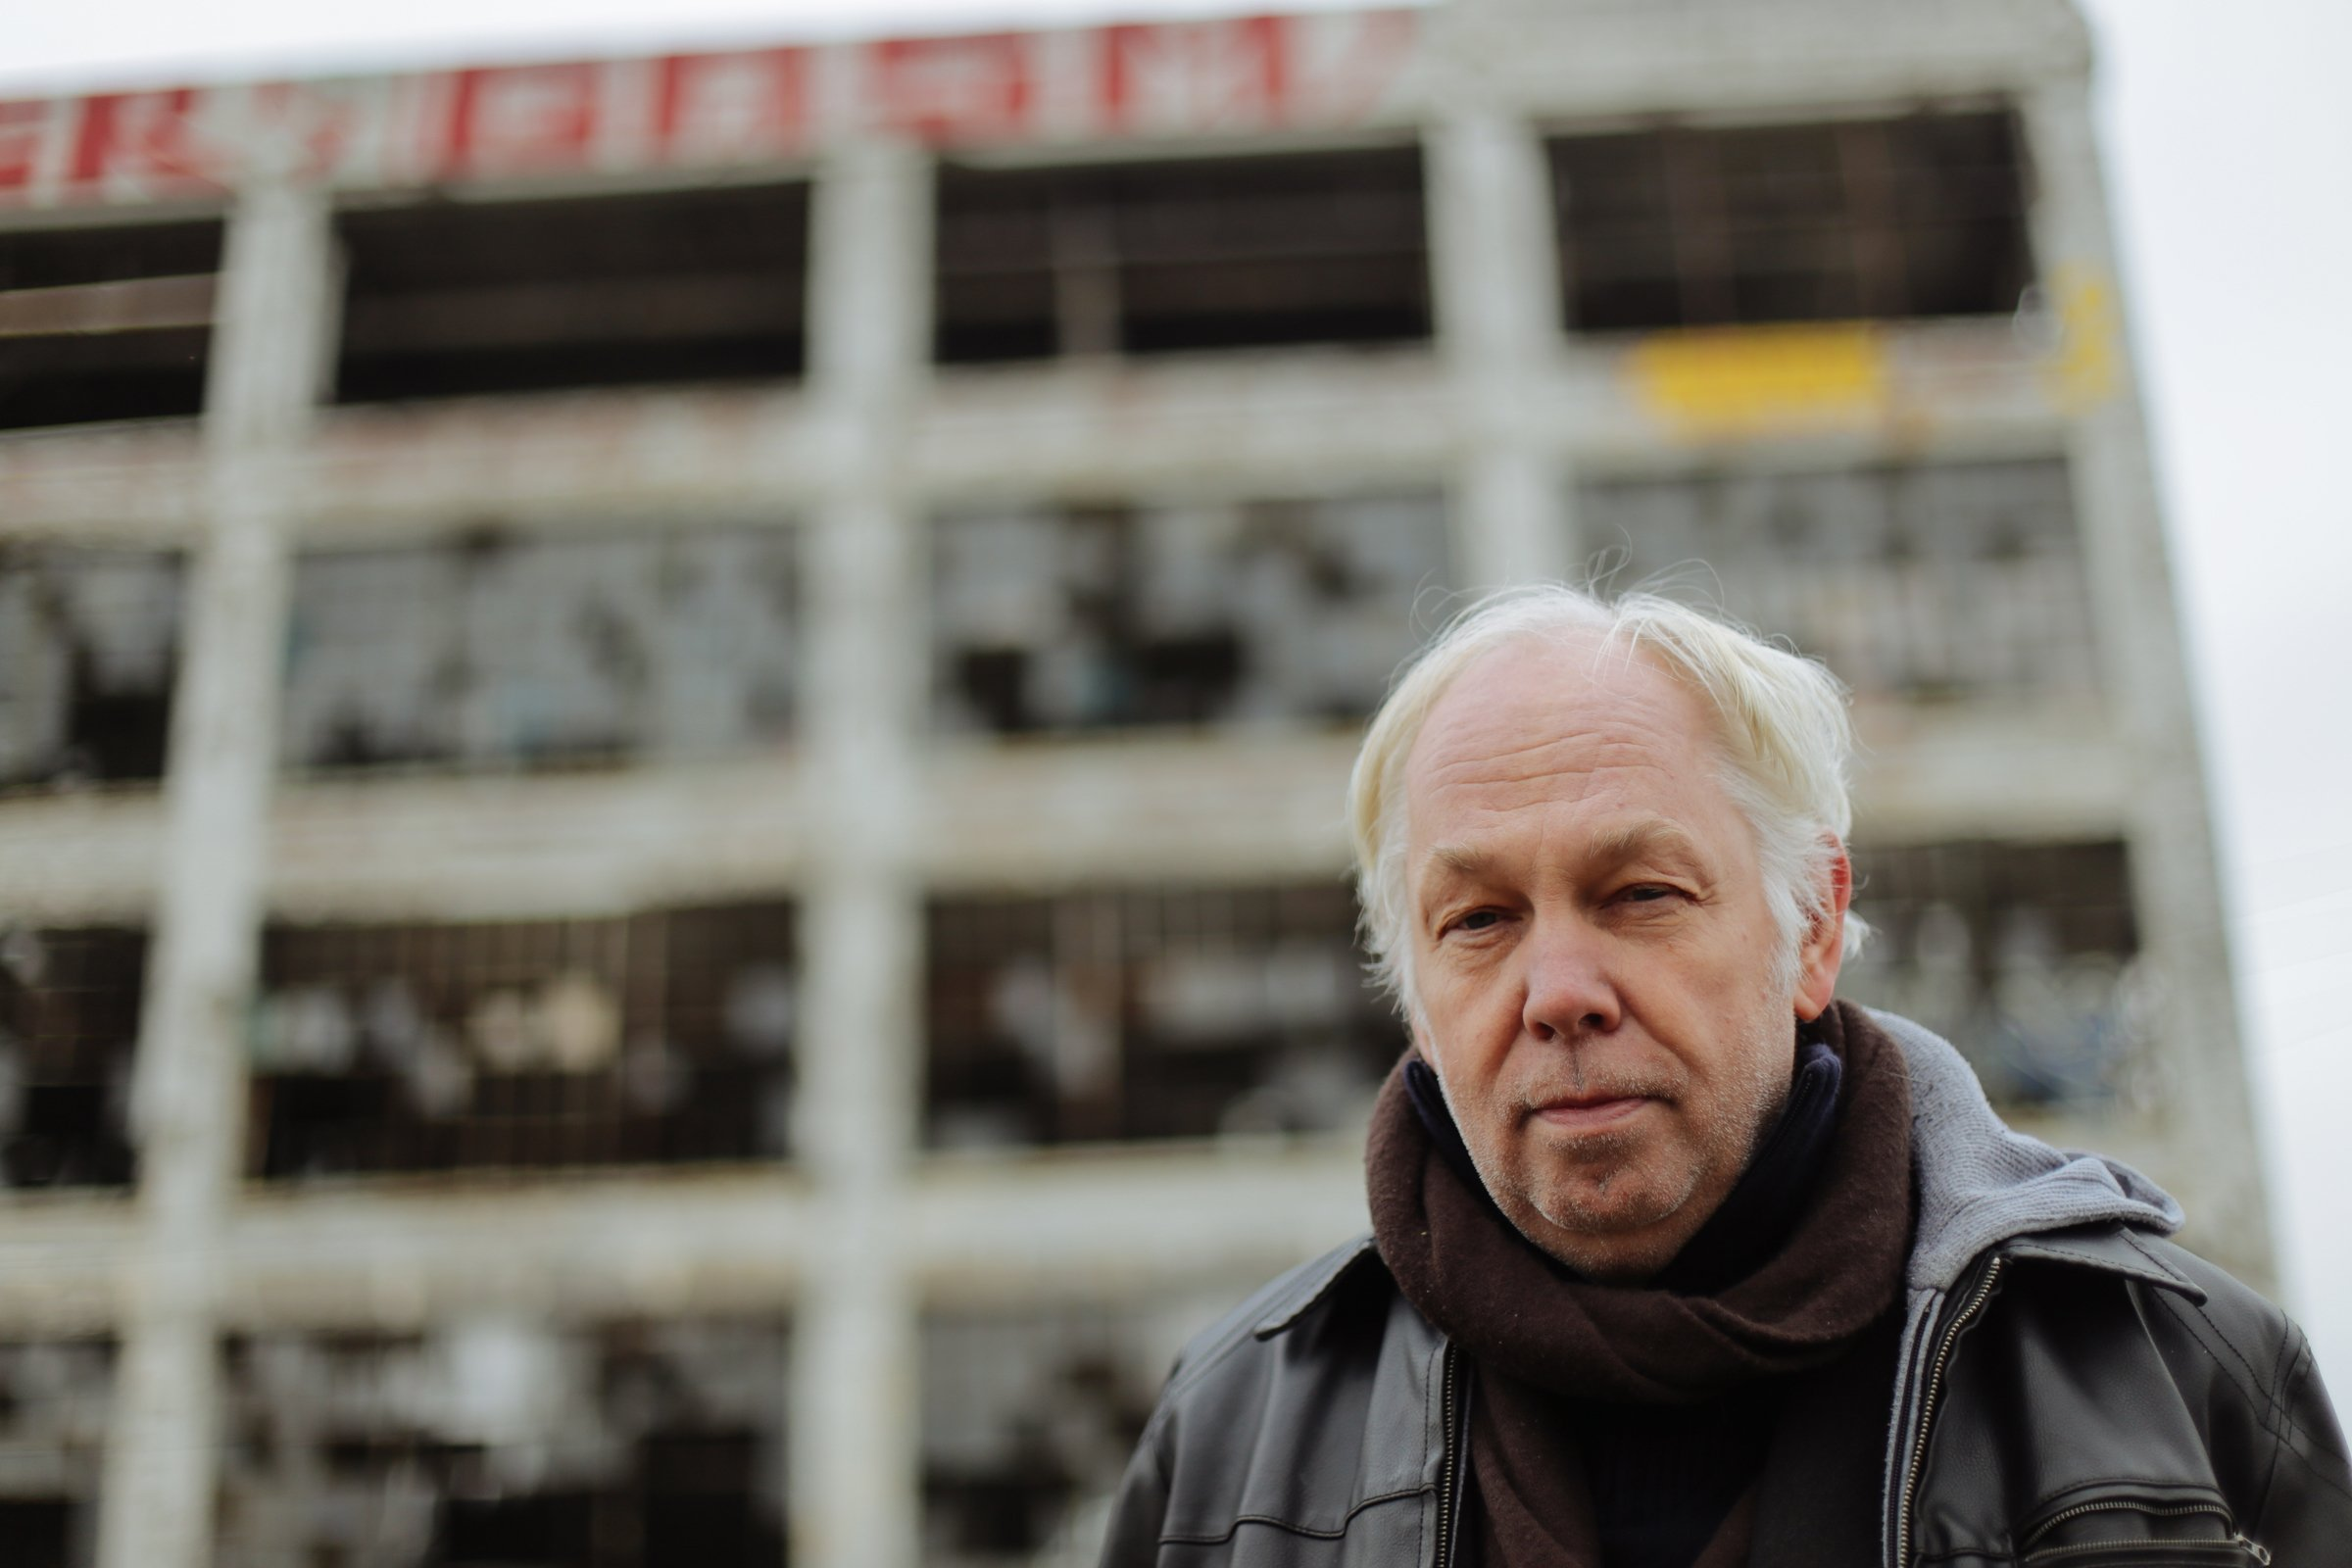 World-renowned Berlin club owner Dimitri Hegemann poses for a photo outside the vacant Fisher Body Plant No. 21 in Detroit on Wednesday November 26, 2014. Hegemann has proposed converting the building into a techno club and community center.